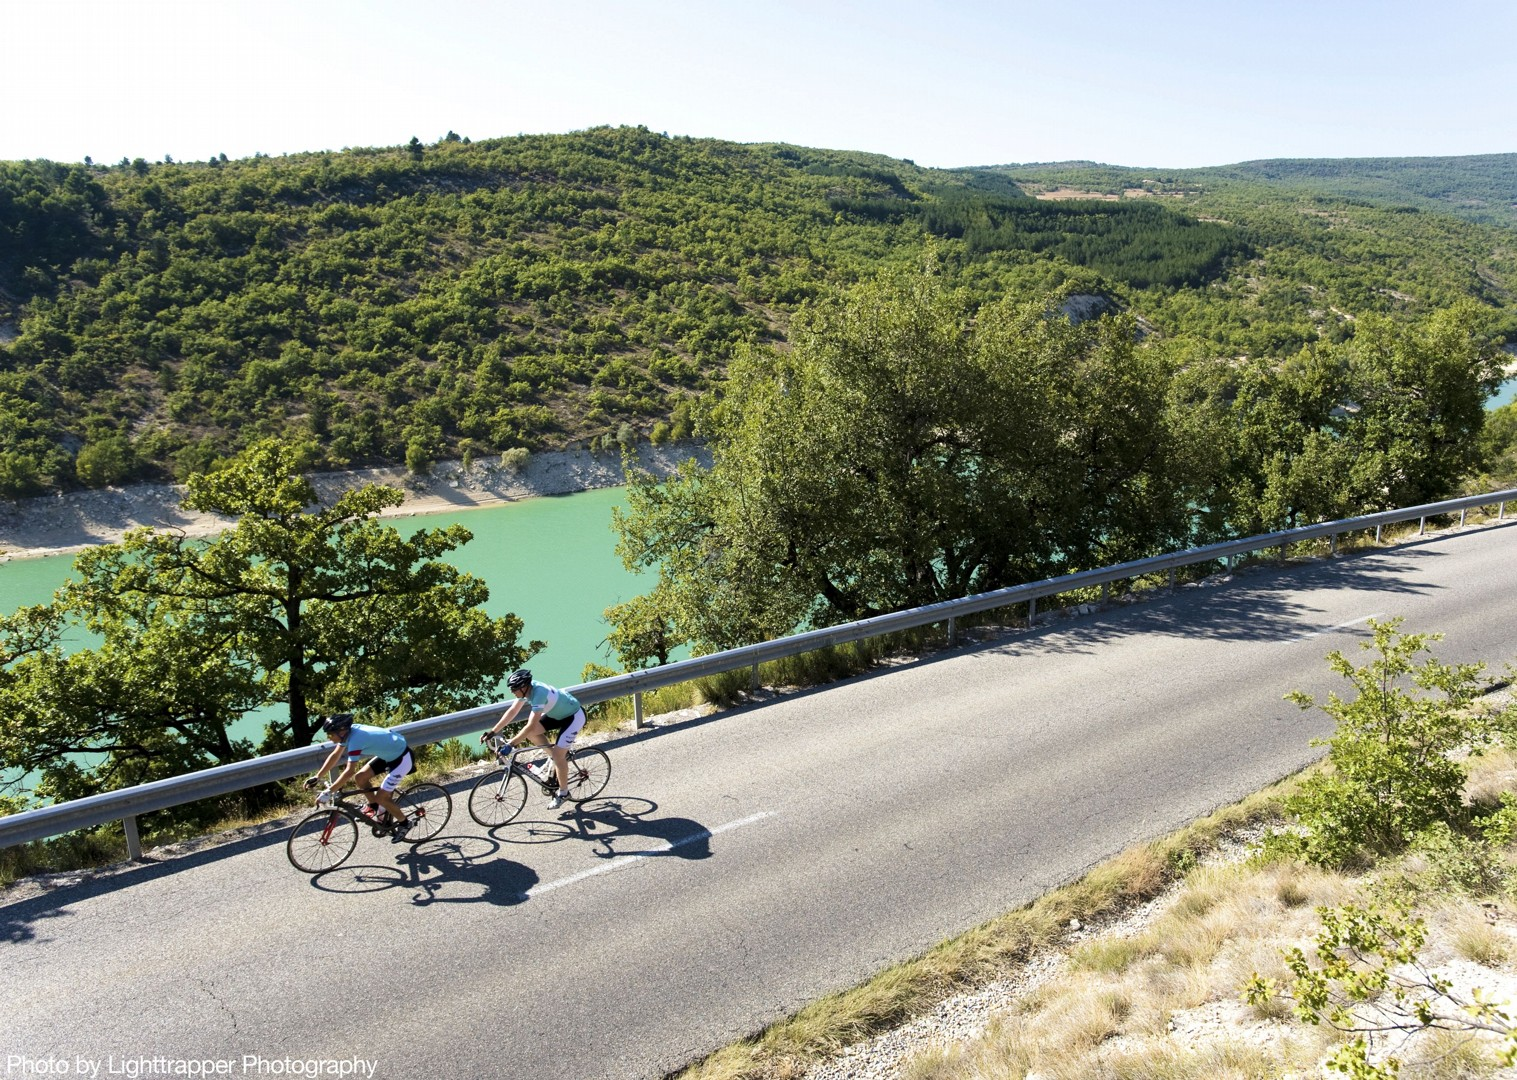 gorge-du-verdon-road-cycling-holiday-provence.jpg - France - Provence - Le Ventoux a Velo - Guided Road Cycling Holiday - Road Cycling